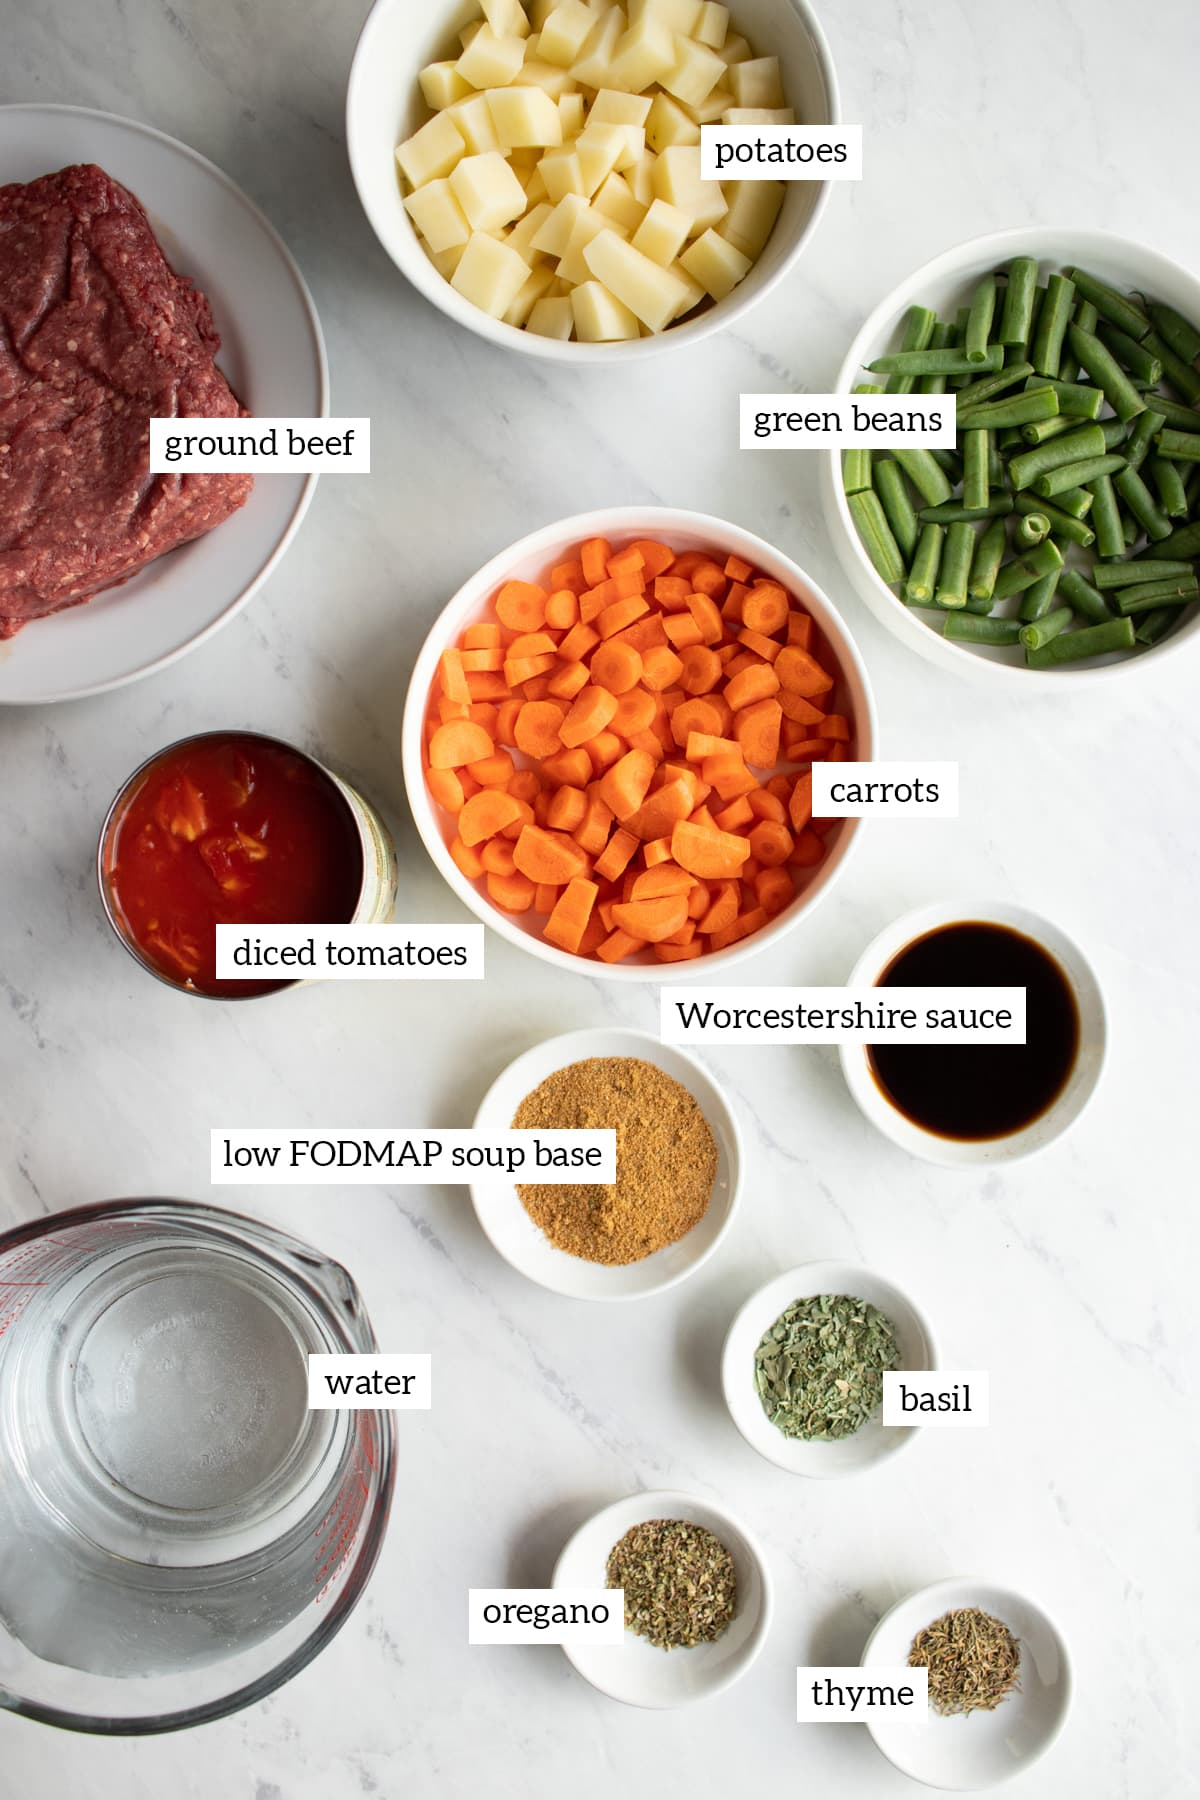 Ingredients needed to make Low FODMAP Hamburger Vegetable Soup are measured out into individual white bowls.